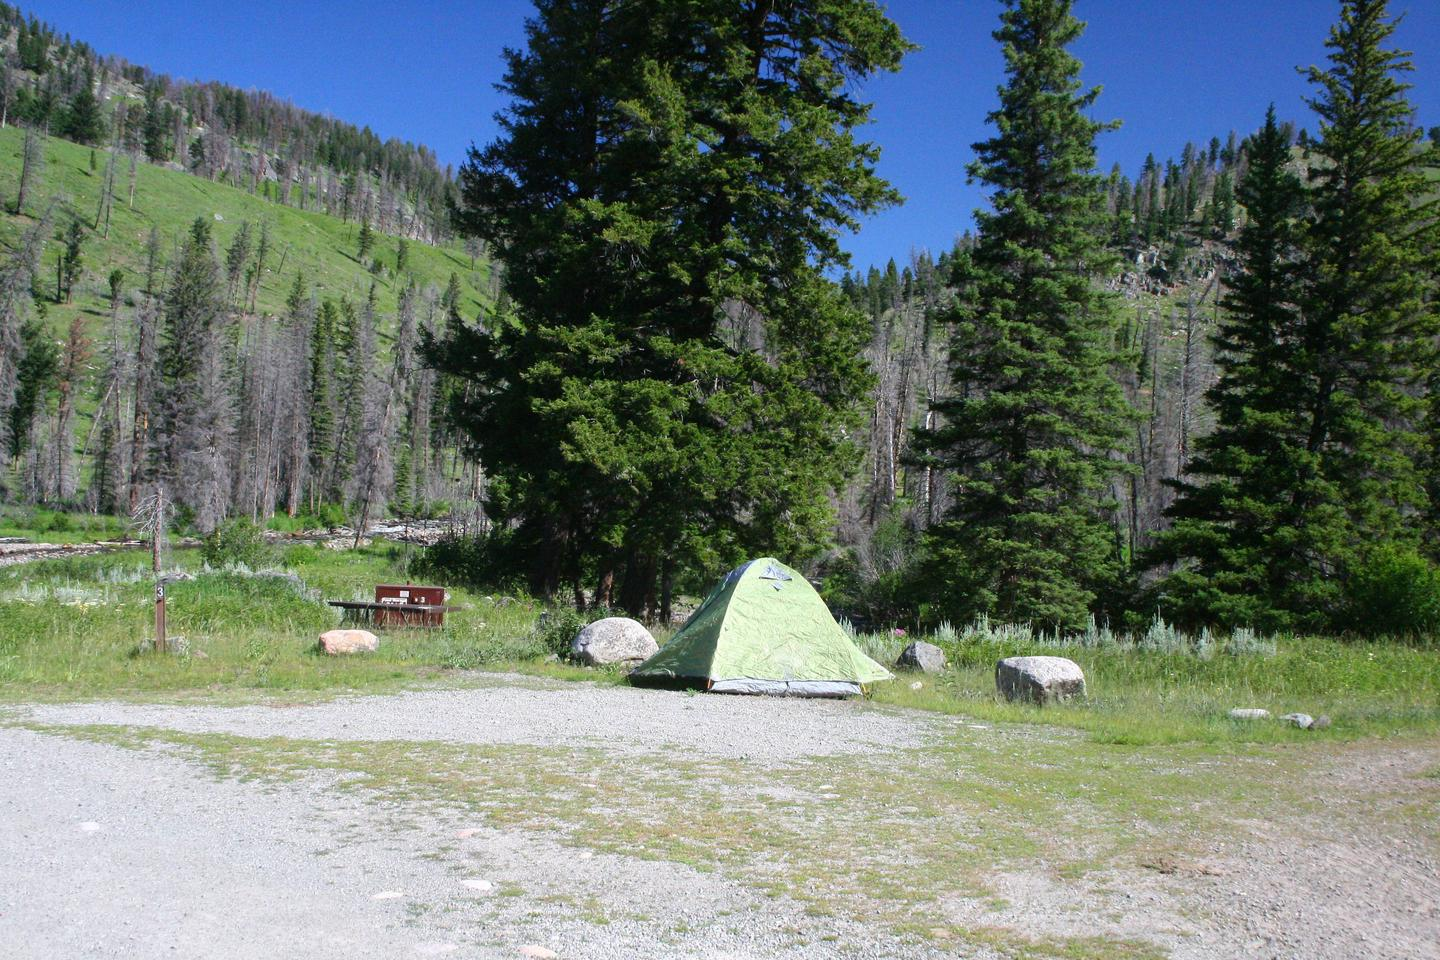 Slough Creek Campground site #3.Slough Creek Campground site #3